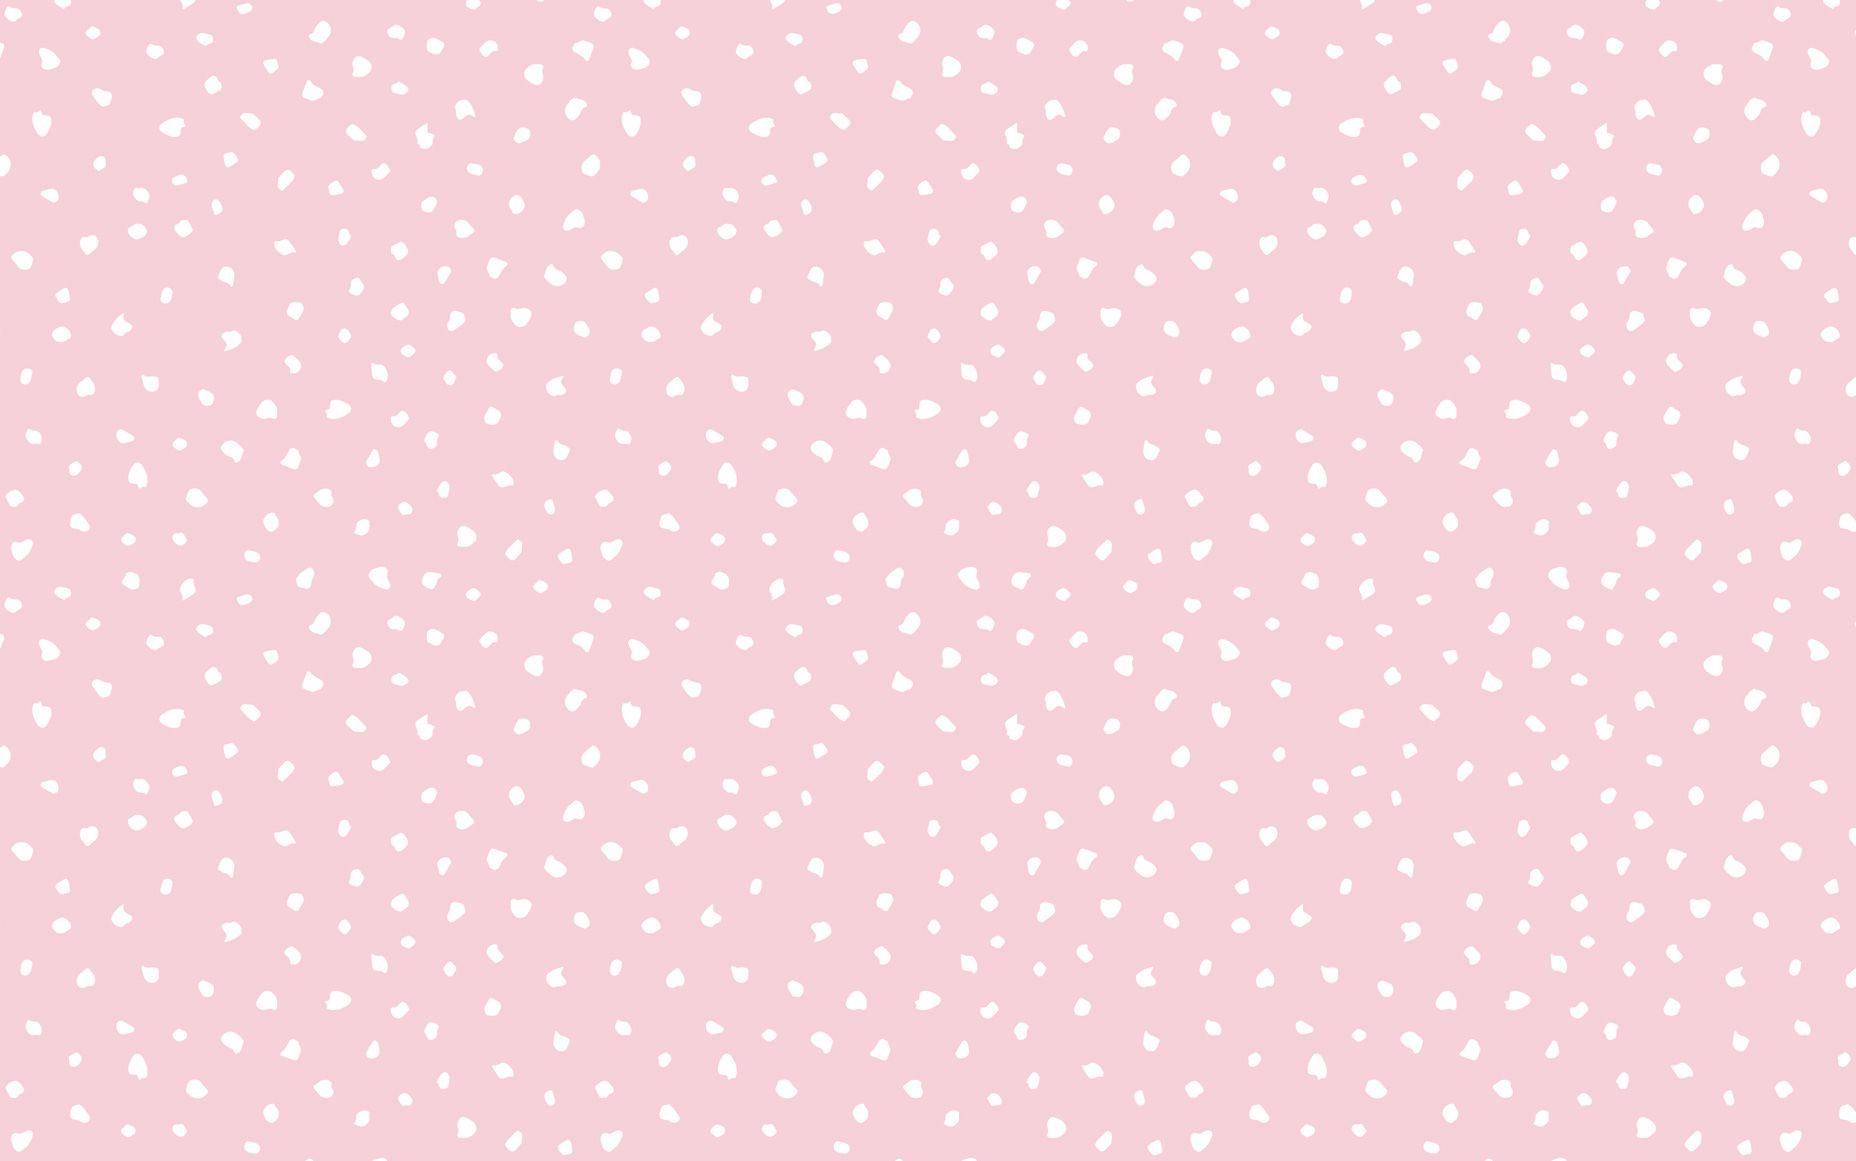 Pink Aesthetic Wallpaper Desktop Posted By Ryan Tremblay